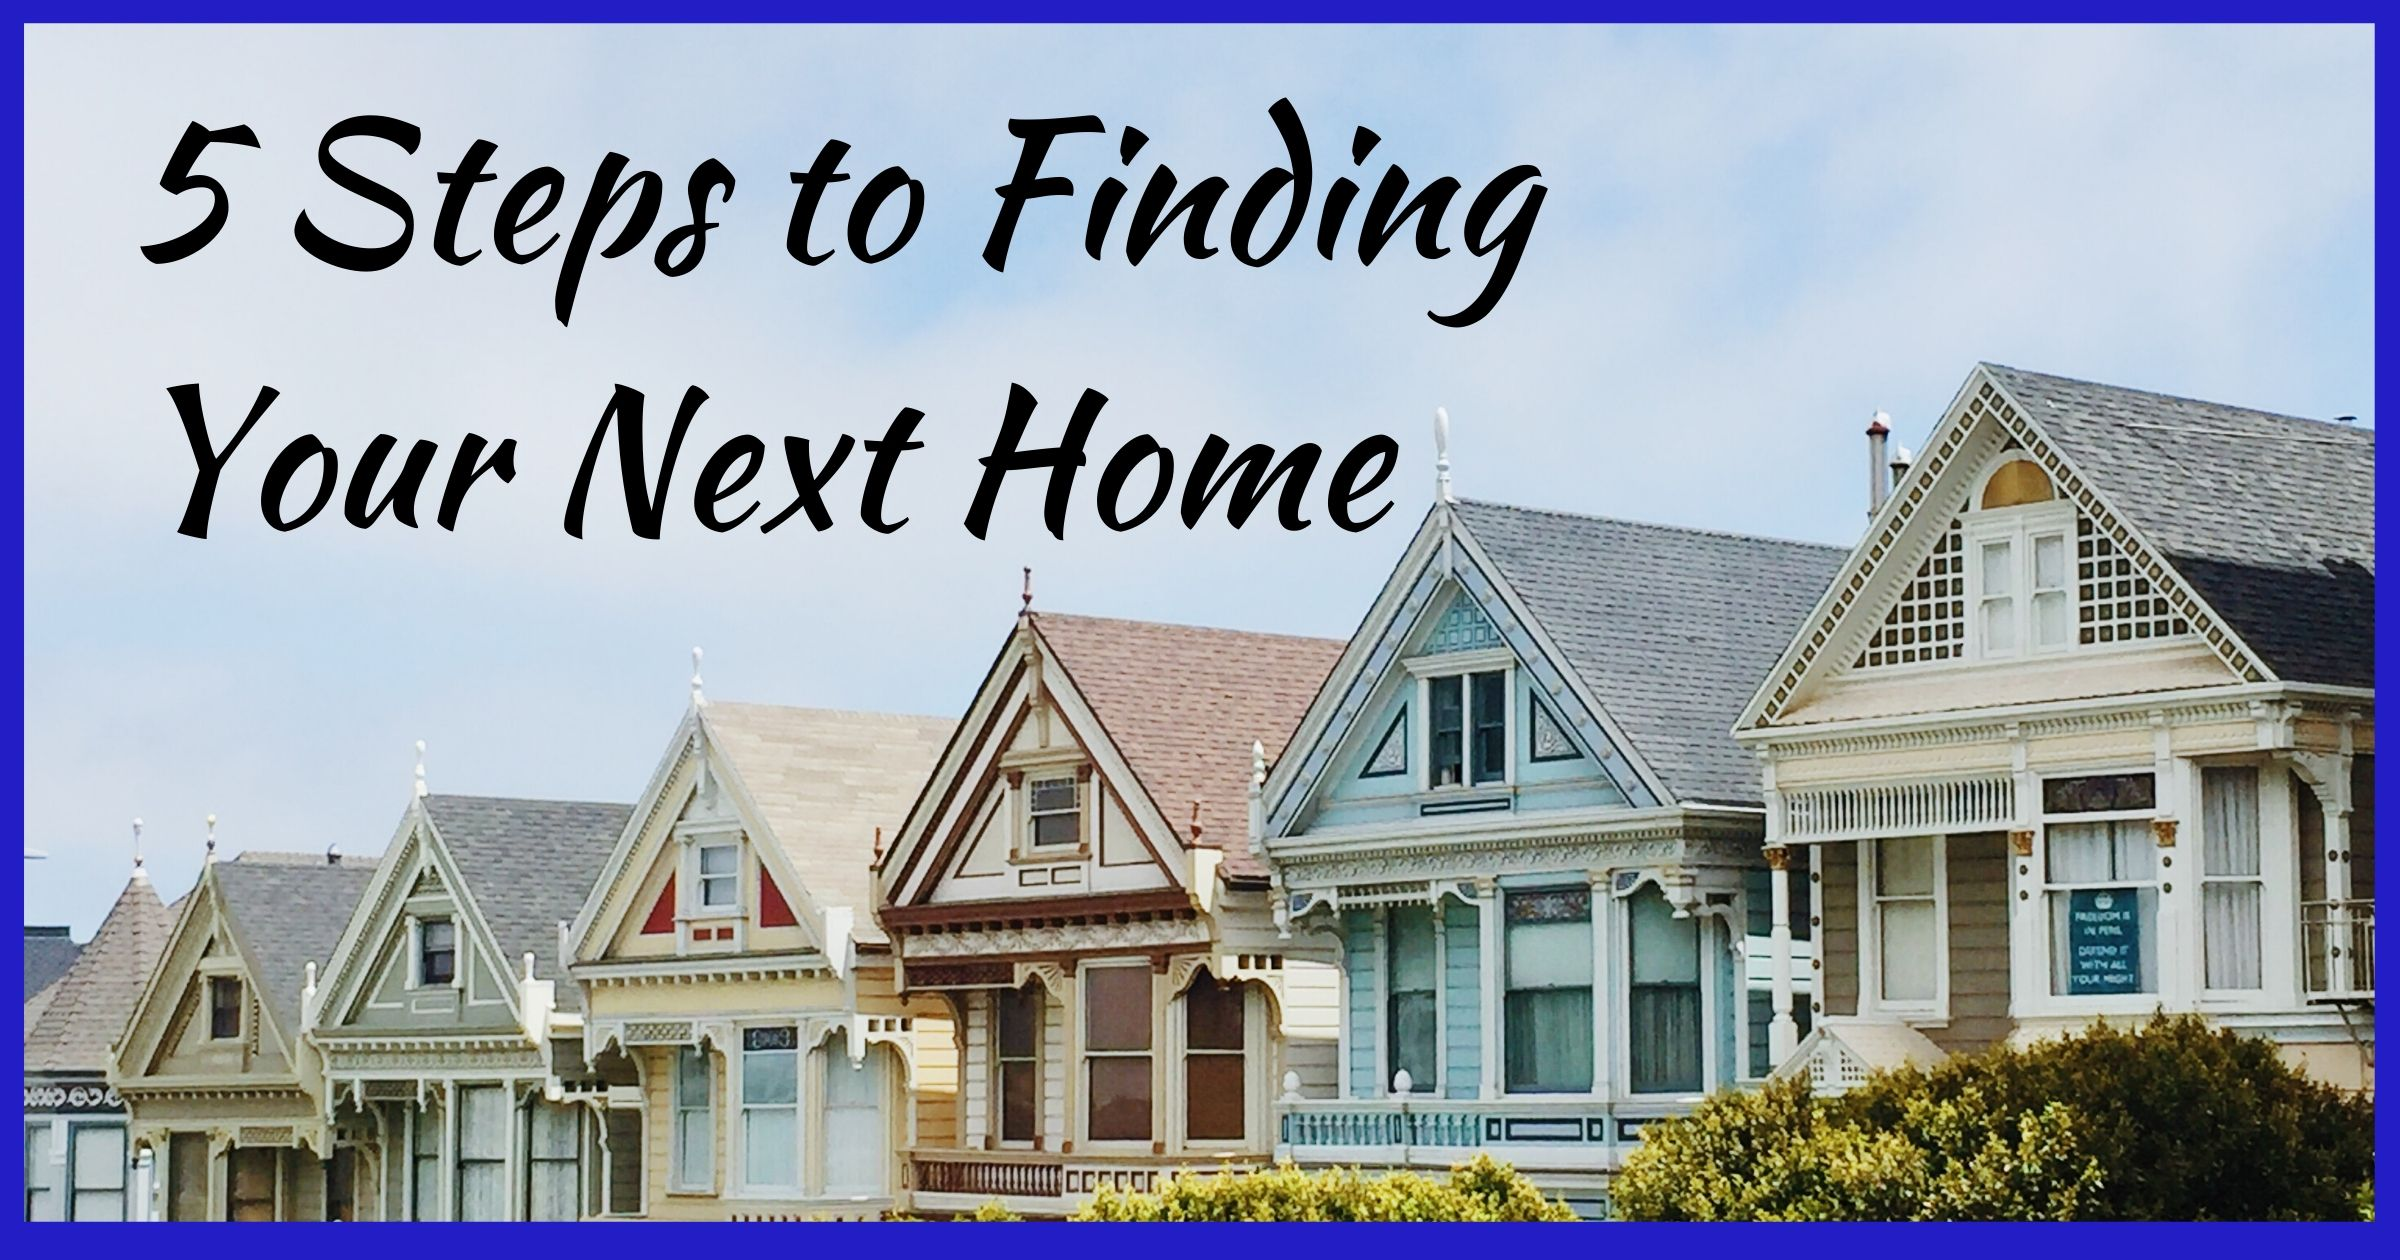 5 Steps to Finding Your Next Home SOCIAL